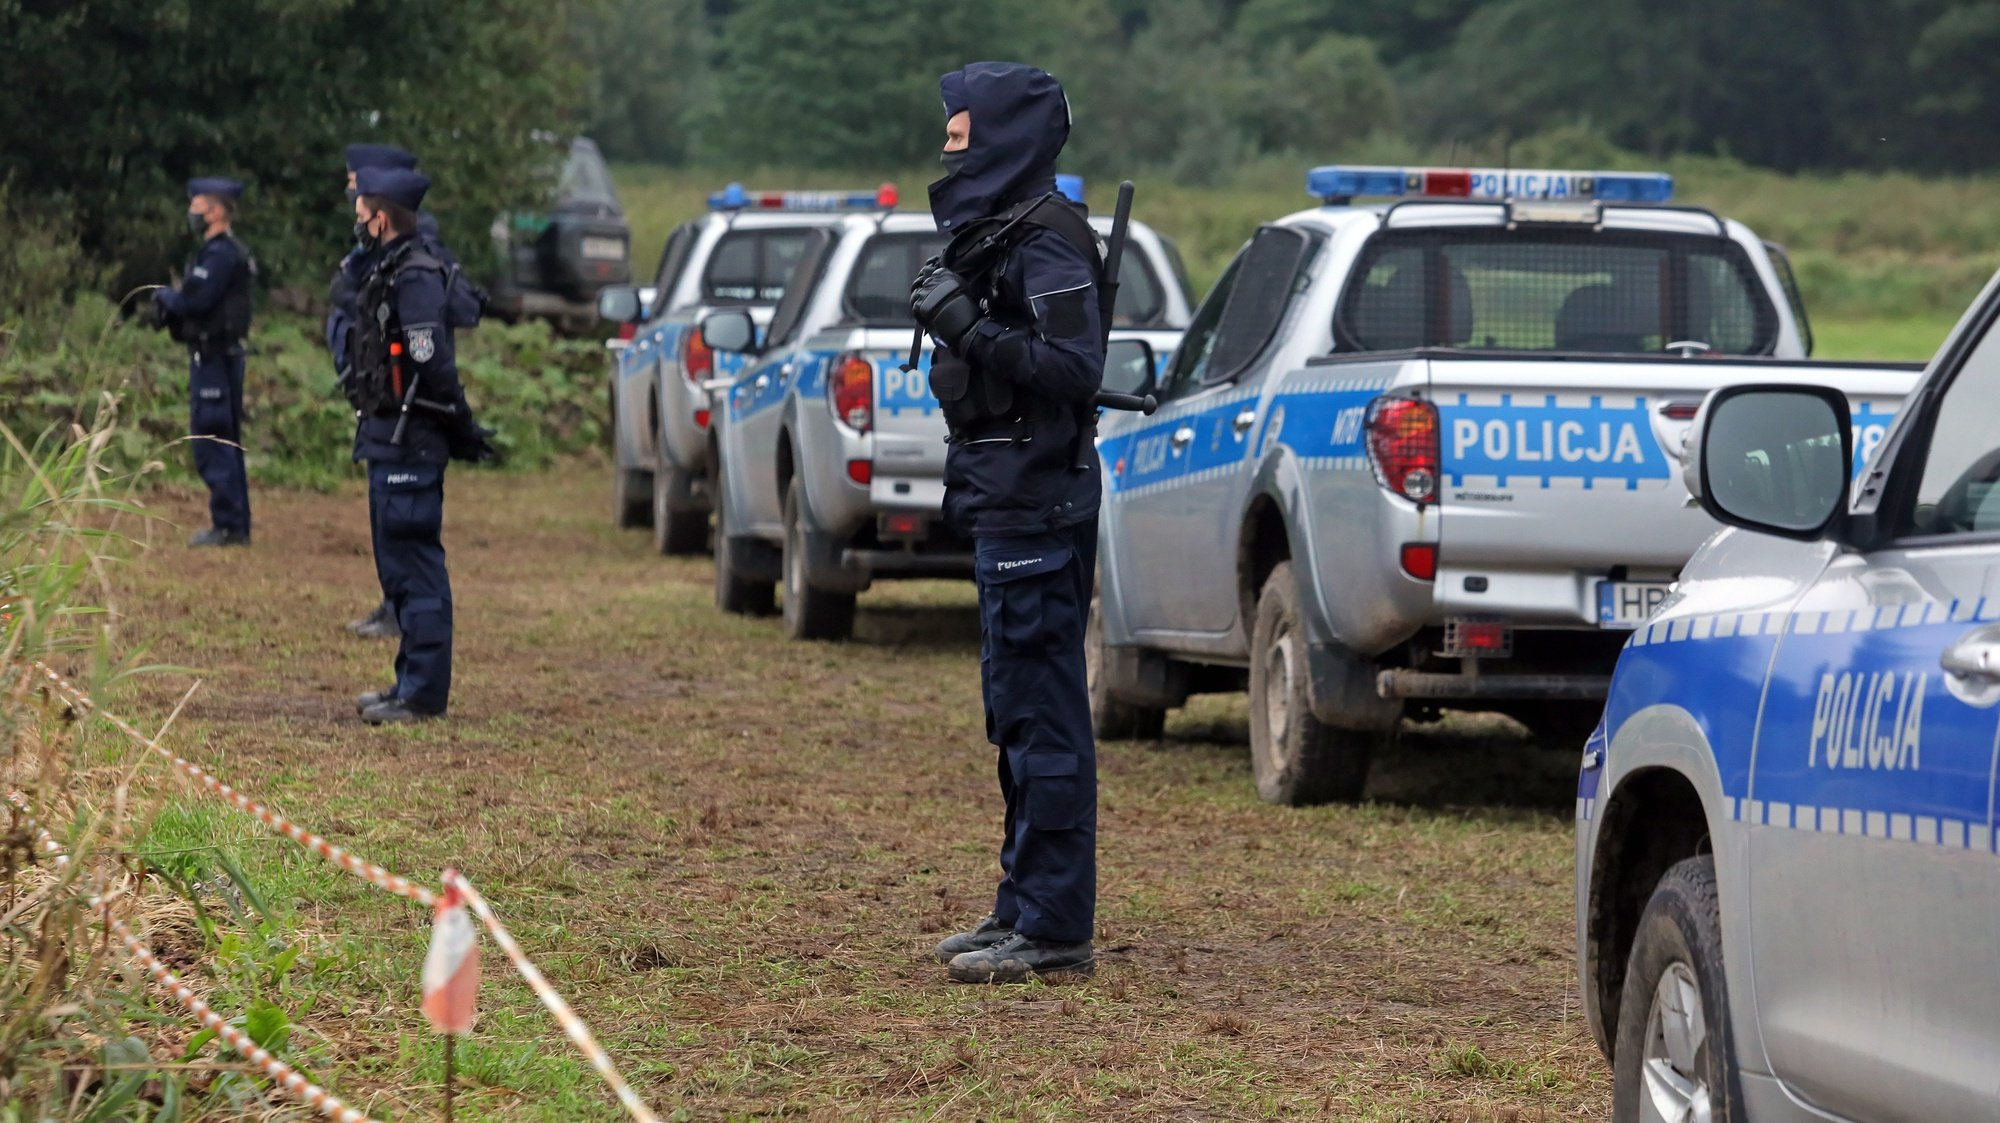 epa09436765 Polish police officers stand at the Polish-Belarusian border near Usnarz Gorny village, north-west Poland, 30 August 2021. The number of migrants from Iraq, Syria, Afghanistan and other countries trying to cross the Belarusian border into neighbouring EU states has increased sharply in recent months. According to official sources, a group of 24 people, including 20 men and four women but no children, camped at Usnarz Gorny on the Belarusian side of the Polish-Belarusian border.  EPA/ARTUR RESZKO POLAND OUT